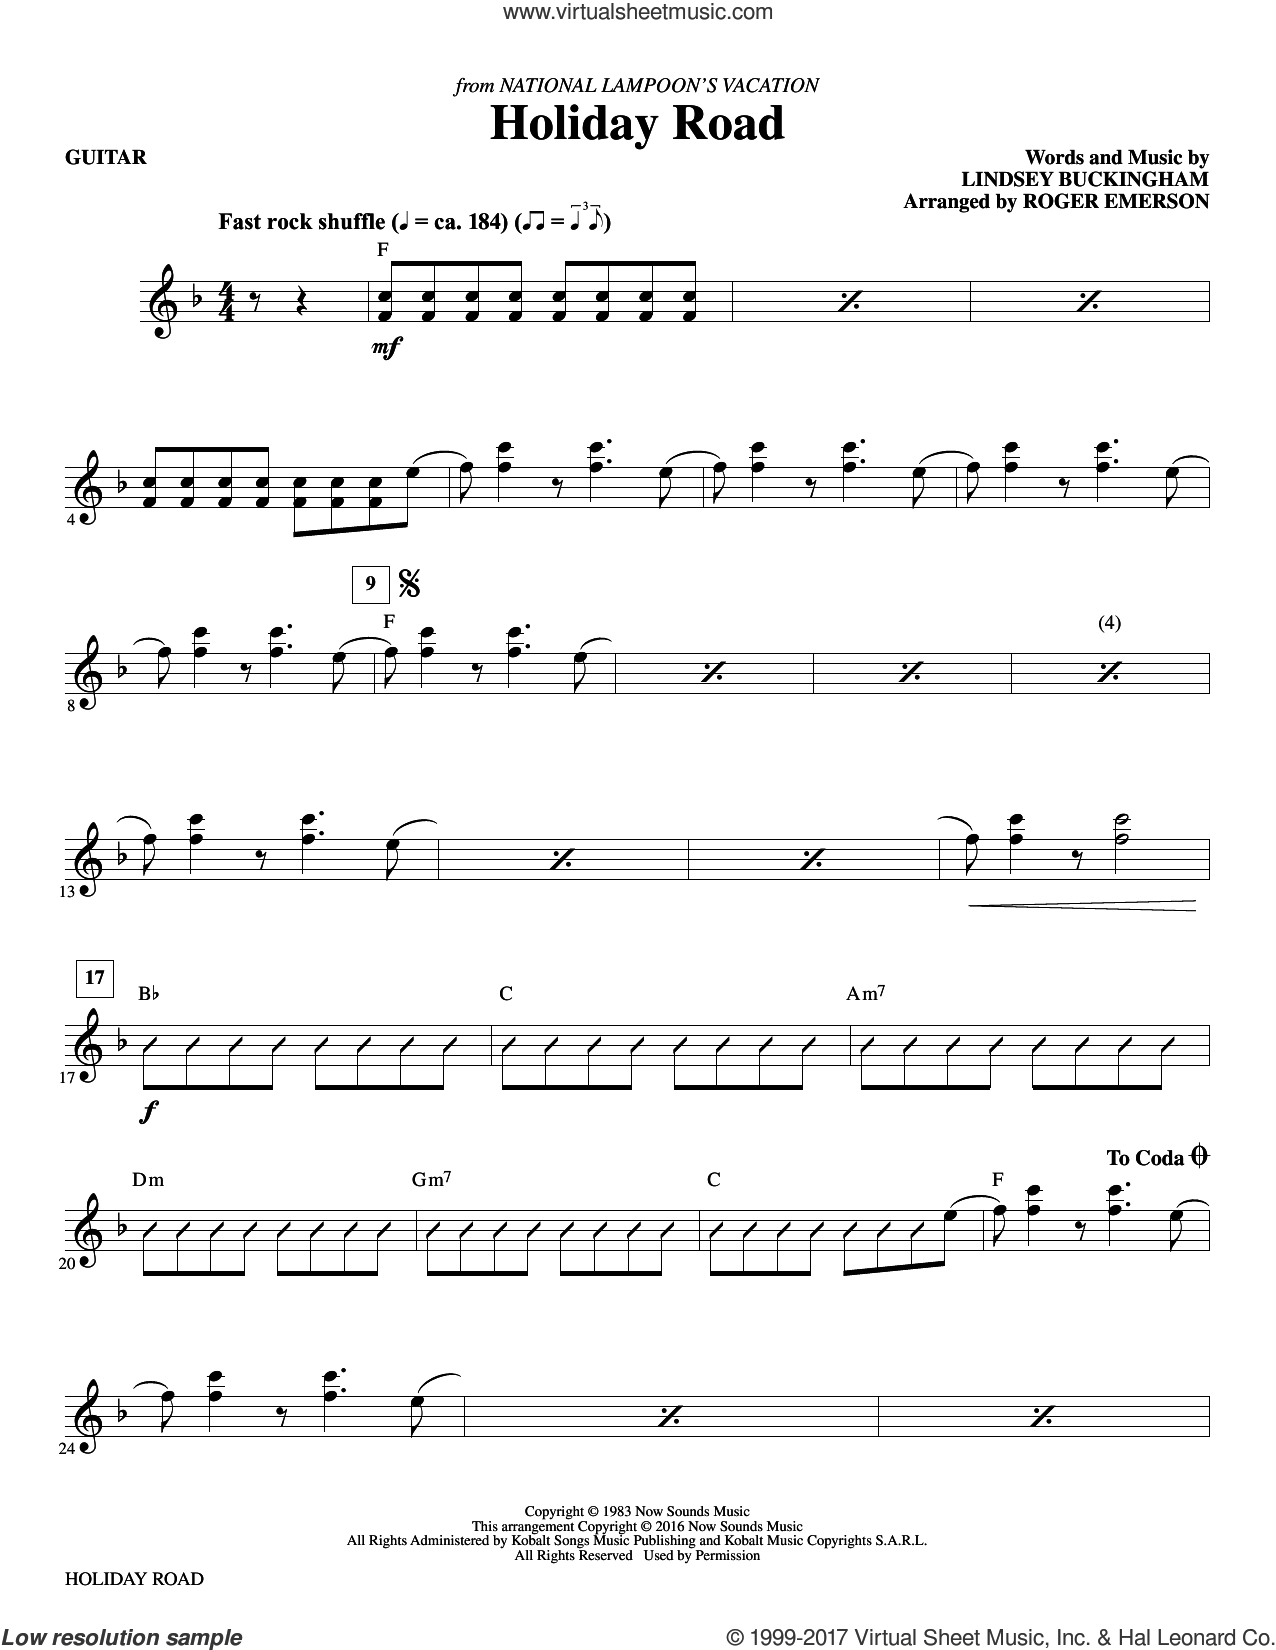 Holiday Road (complete set of parts) sheet music for orchestra/band by Lindsey Buckingham and R. Emerson, intermediate skill level